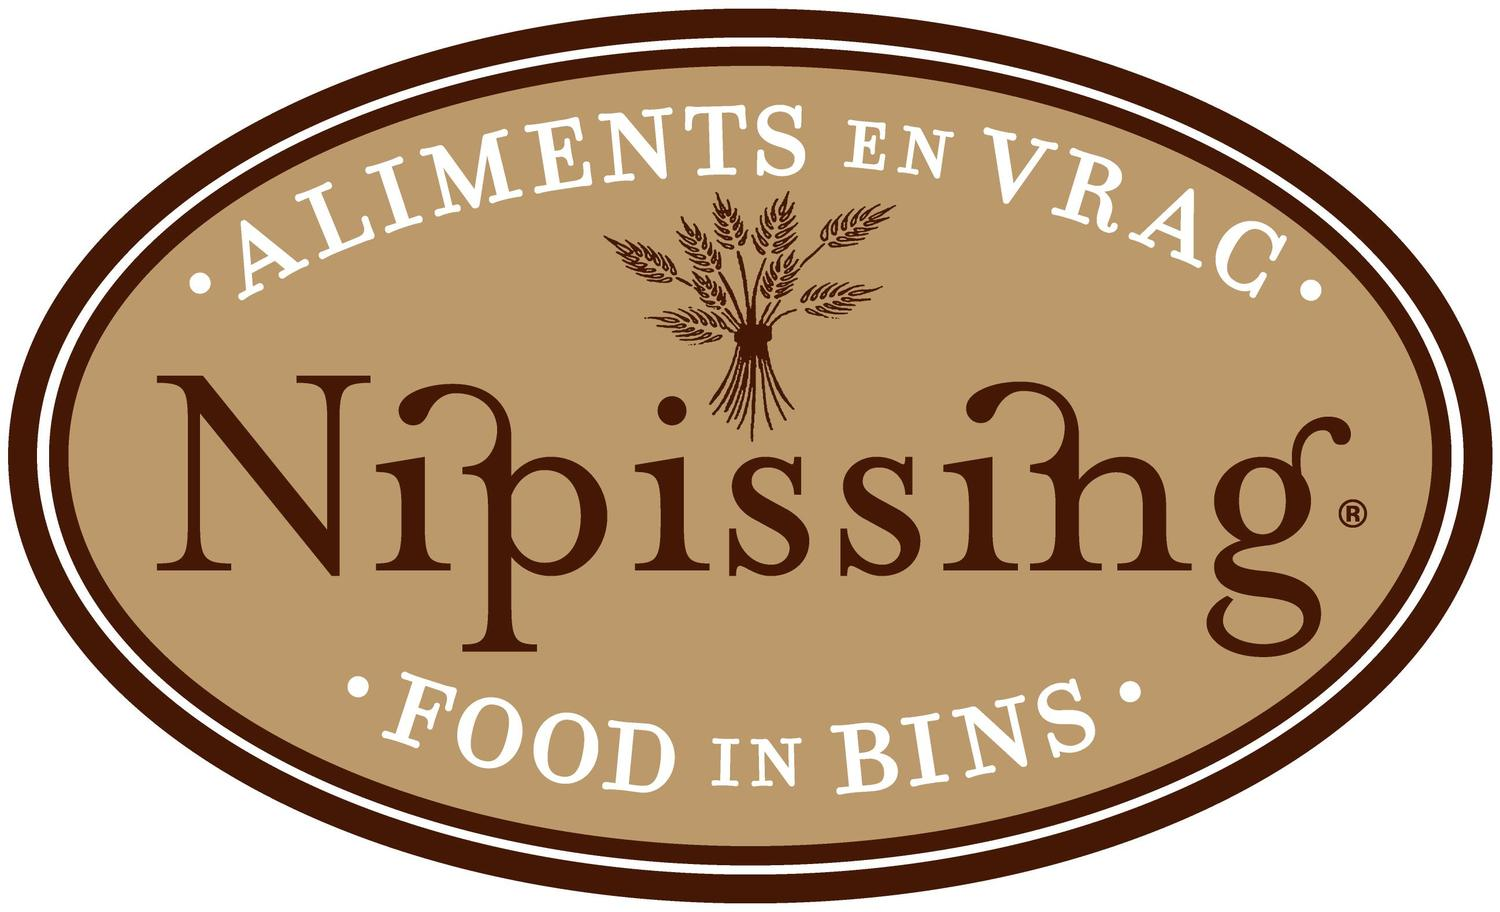 Aliments en vrac Nipissing Food in Bins